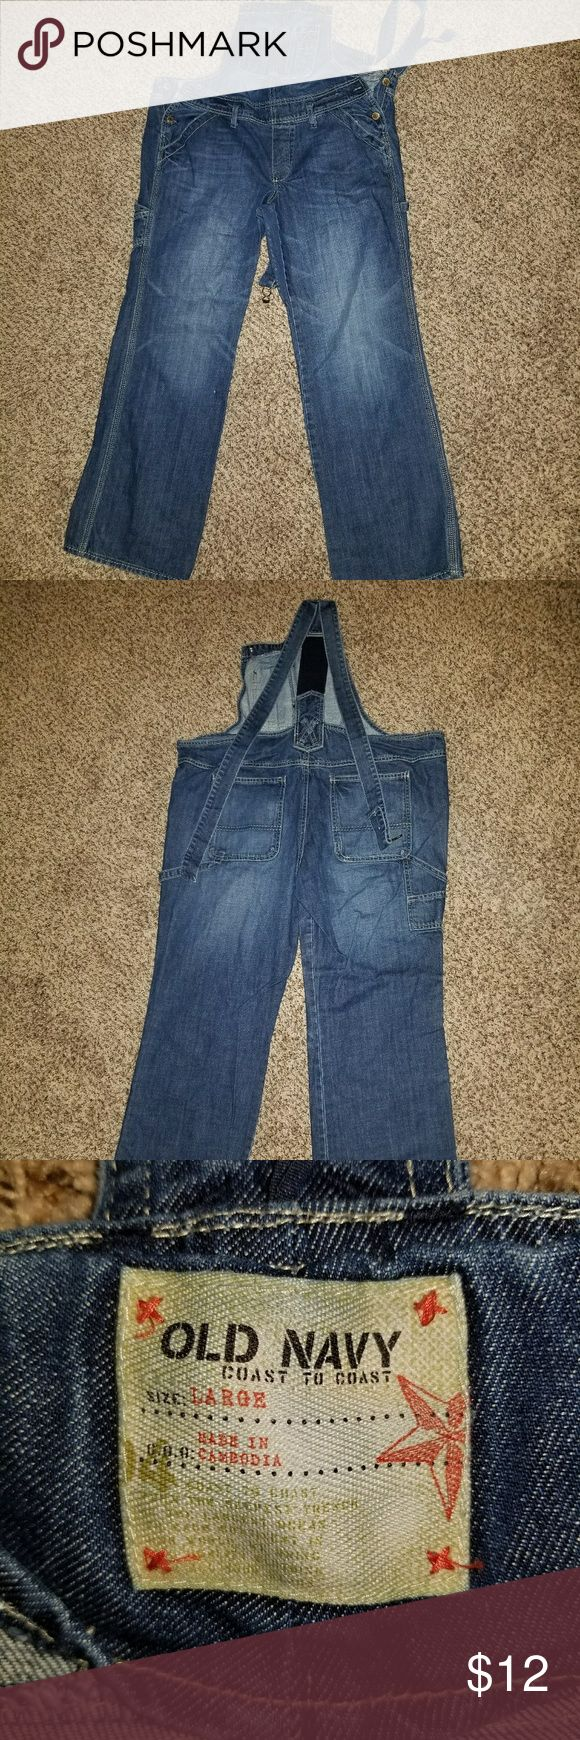 Old Navy Denim Overalls Old Navy Denim Overalls, low ride, worn a handful of times. Can be dressed up or dressed down because of the fit. Note: metal closures are missing. Old Navy Jeans Overalls